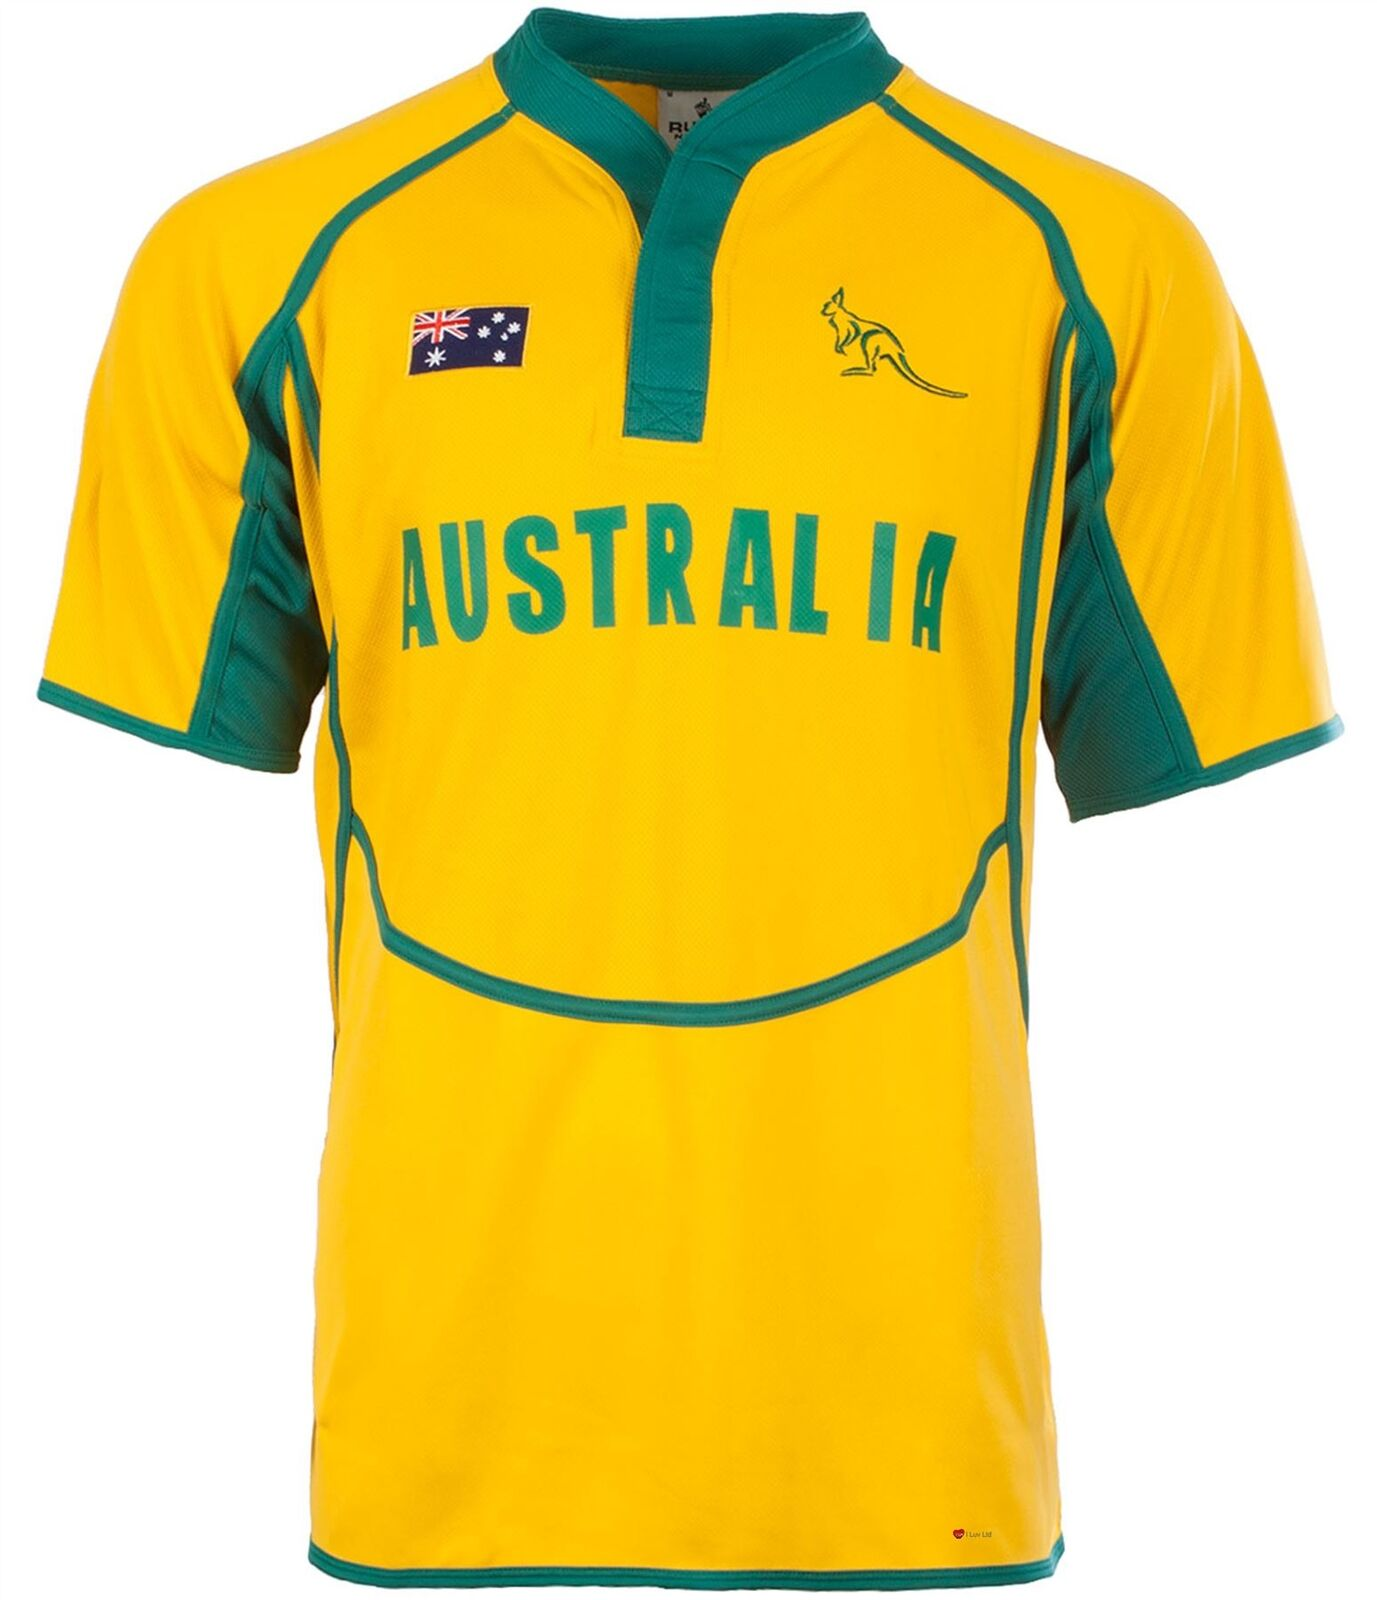 Gents Cooldry Style Rugby Shirt In Australia Colours Size Medium